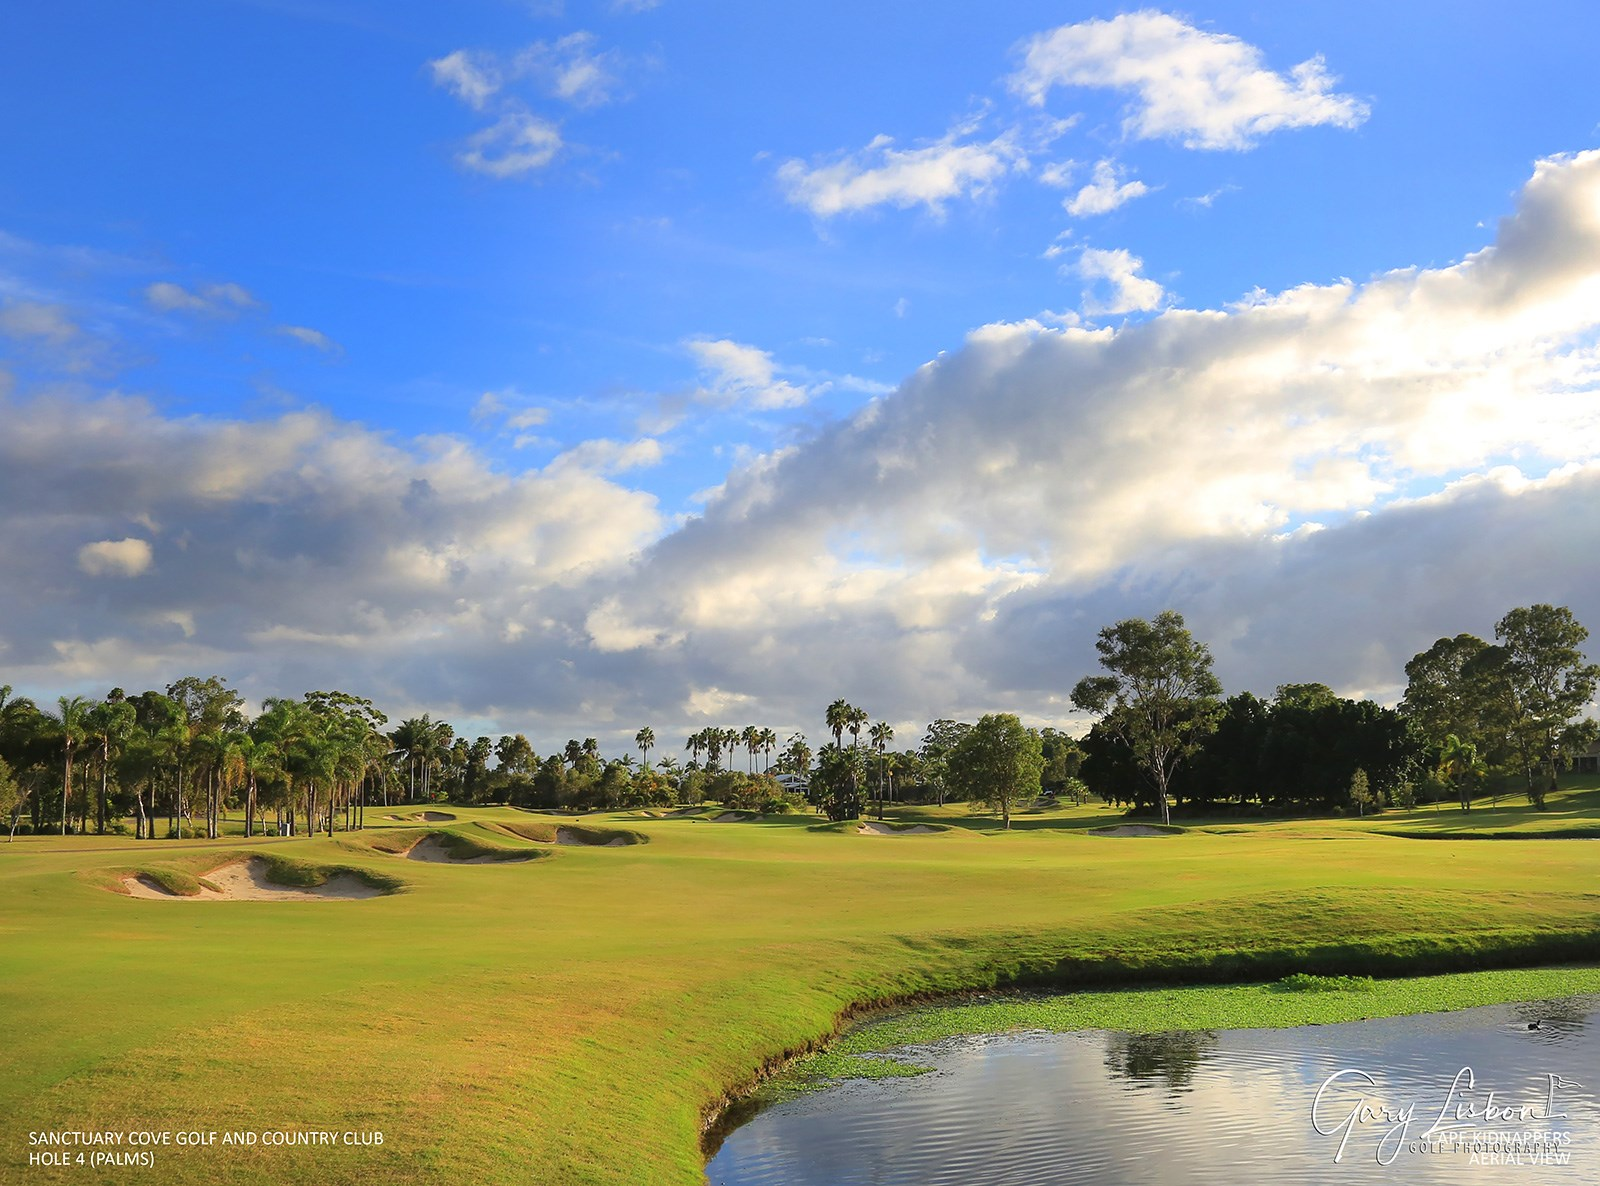 Sanctuary Cove - The Palms Hole 4